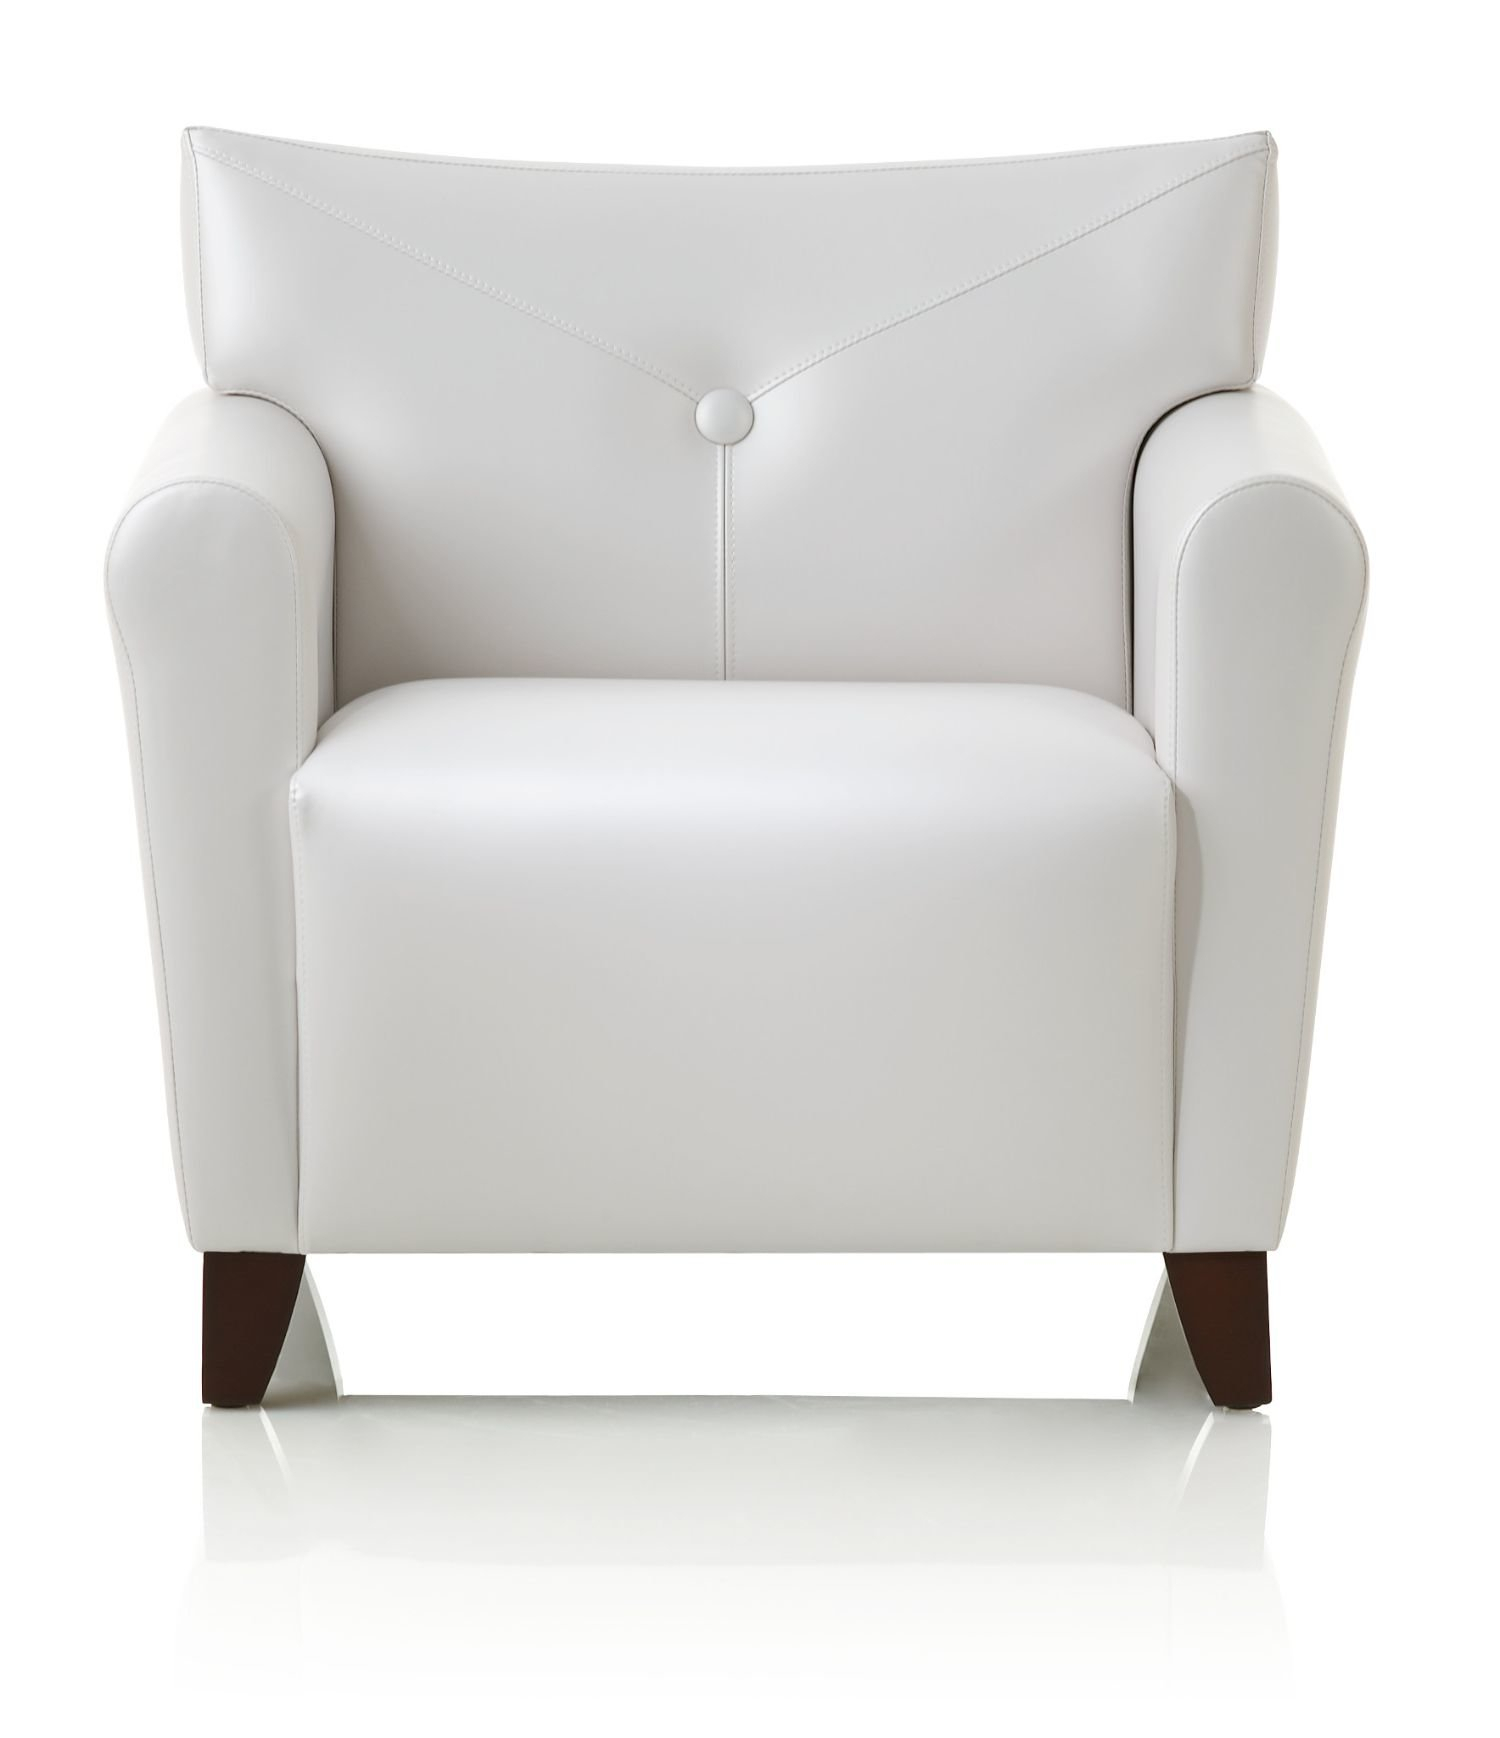 Ki Furniture Mesa™ Armchair | Wayfair Inside Mesa Foam Oversized Sofa Chairs (View 12 of 25)